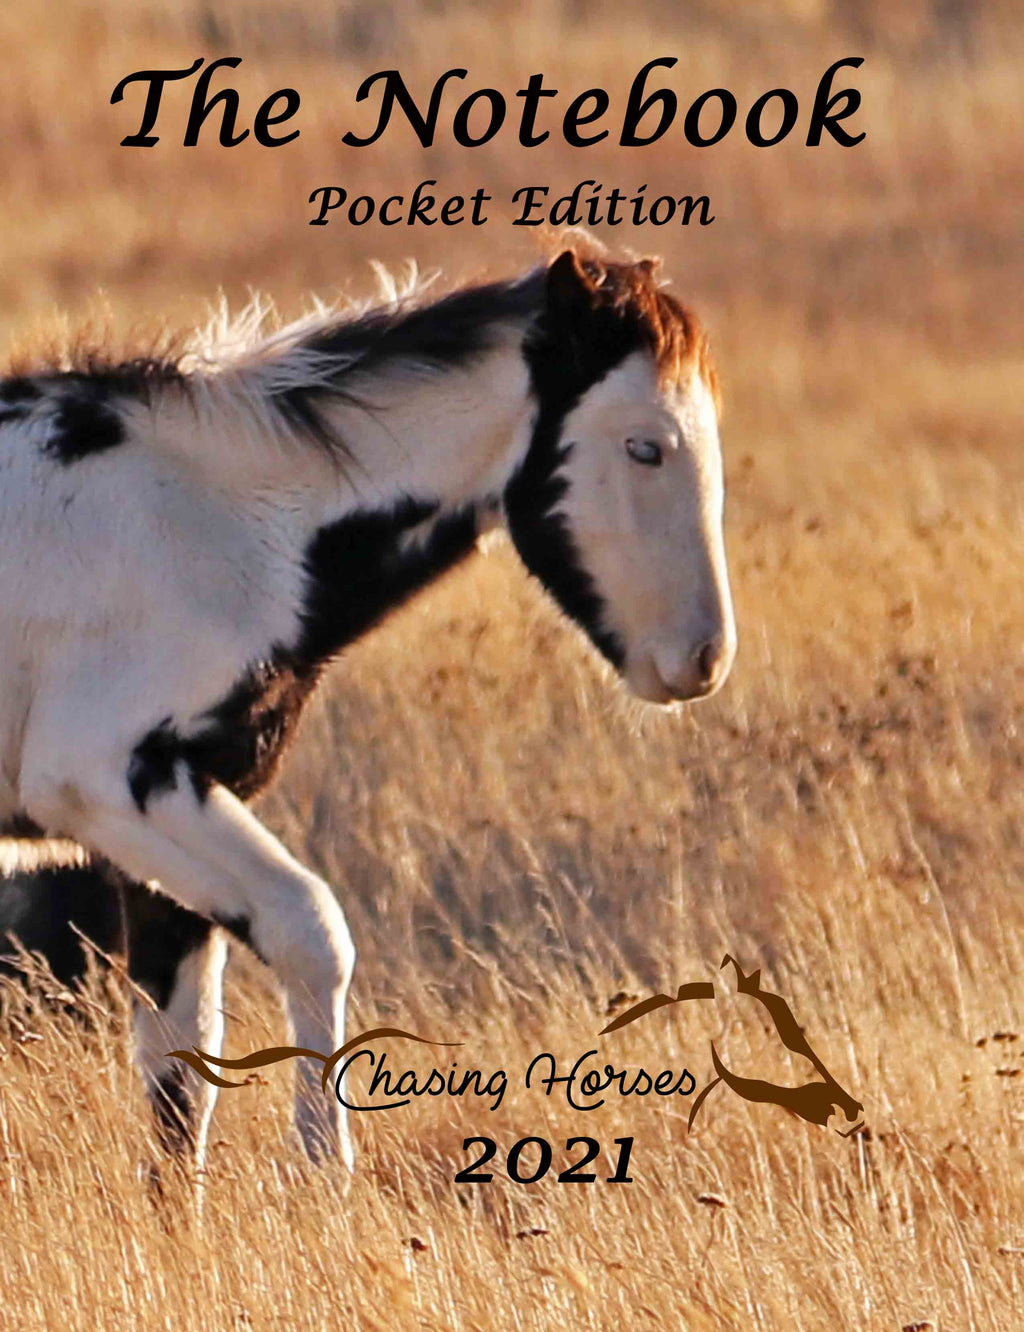 Chasing Horses 2021 The Notebook - pocket version